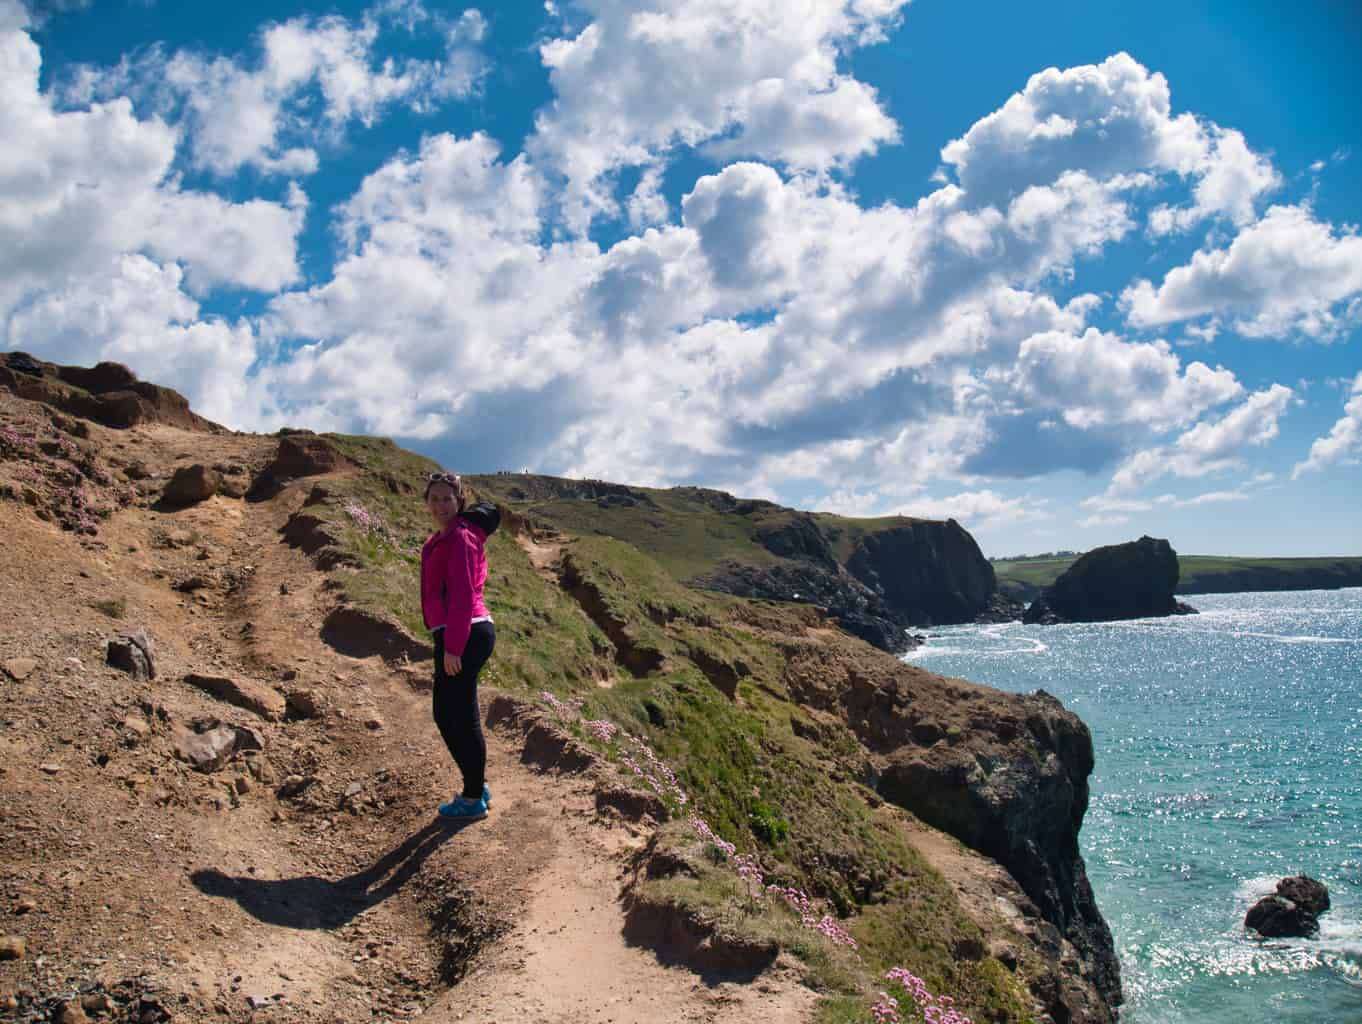 Kalyn walking on the cliffs at Kynance Cove with blue sky and clouds and light blue water in the background